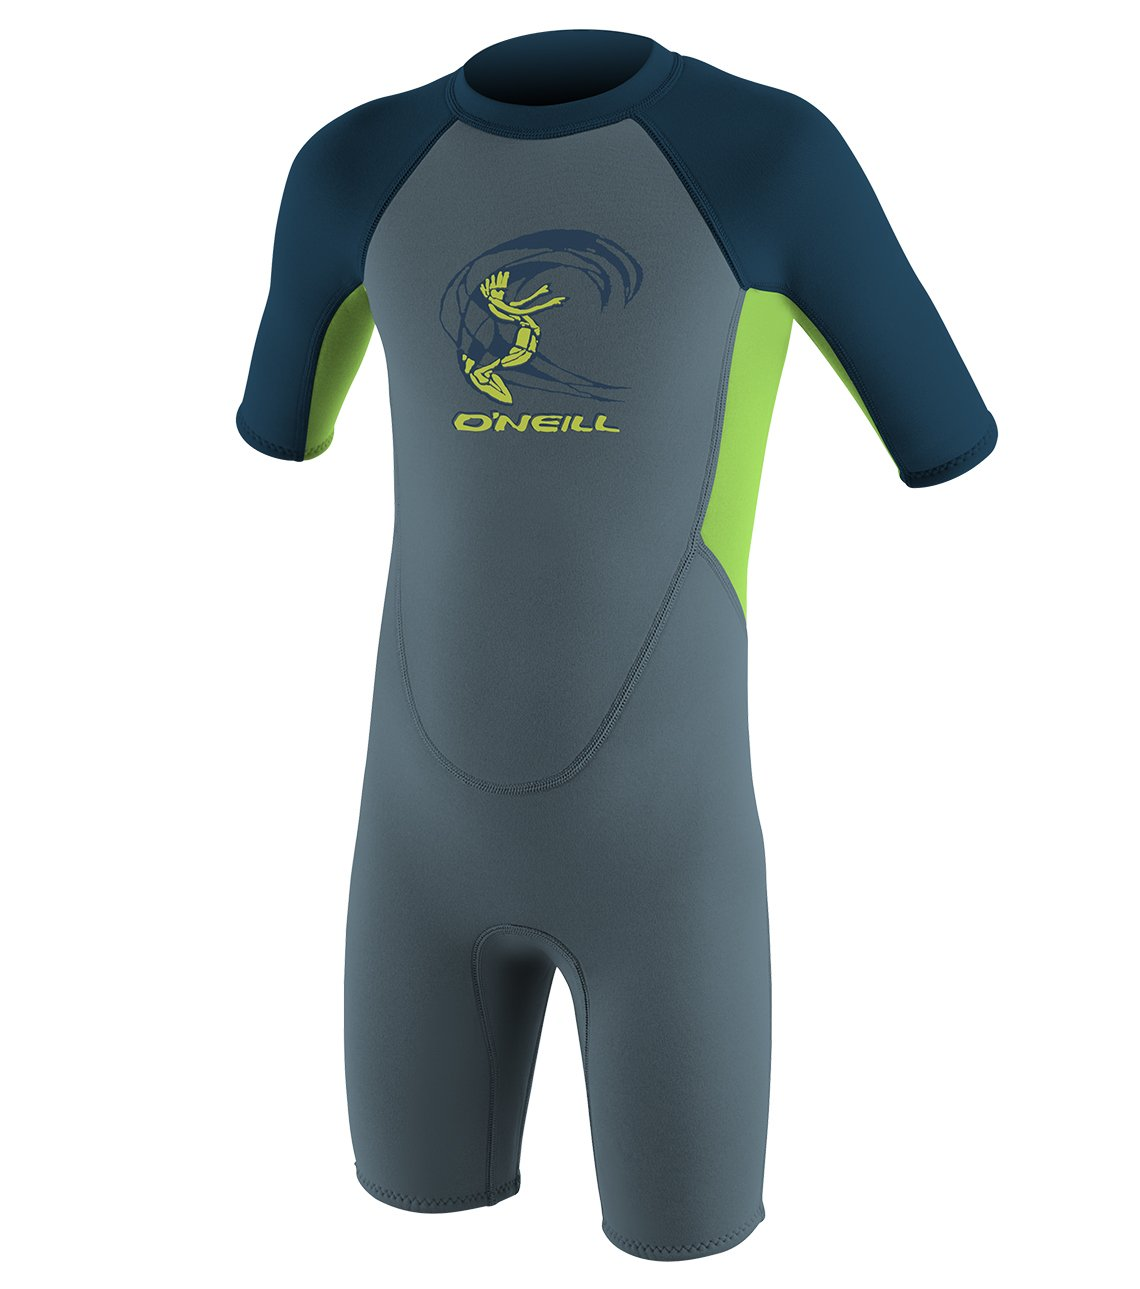 O'Neill Toddler Reactor-2 2mm Back Zip Short Sleeve Spring Wetsuit, Blue/Dayglow/Slate, 3 by O'Neill Wetsuits